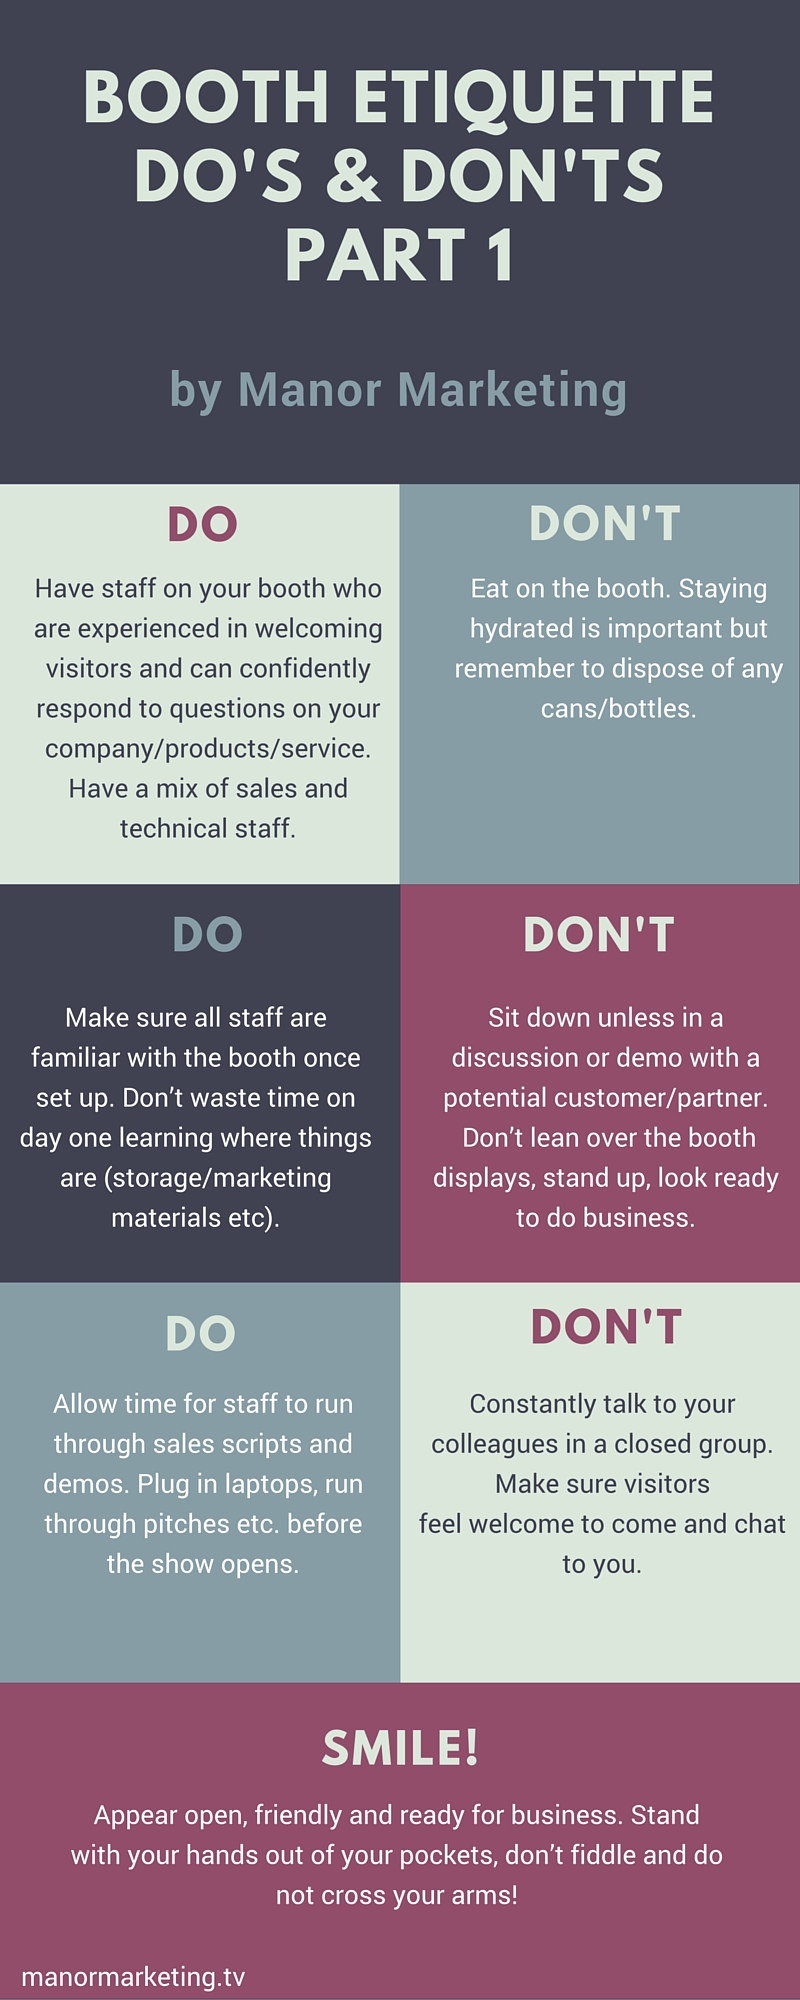 Trade Show Booth Etiquette : Booth etiquette a guide for your employees at shows events